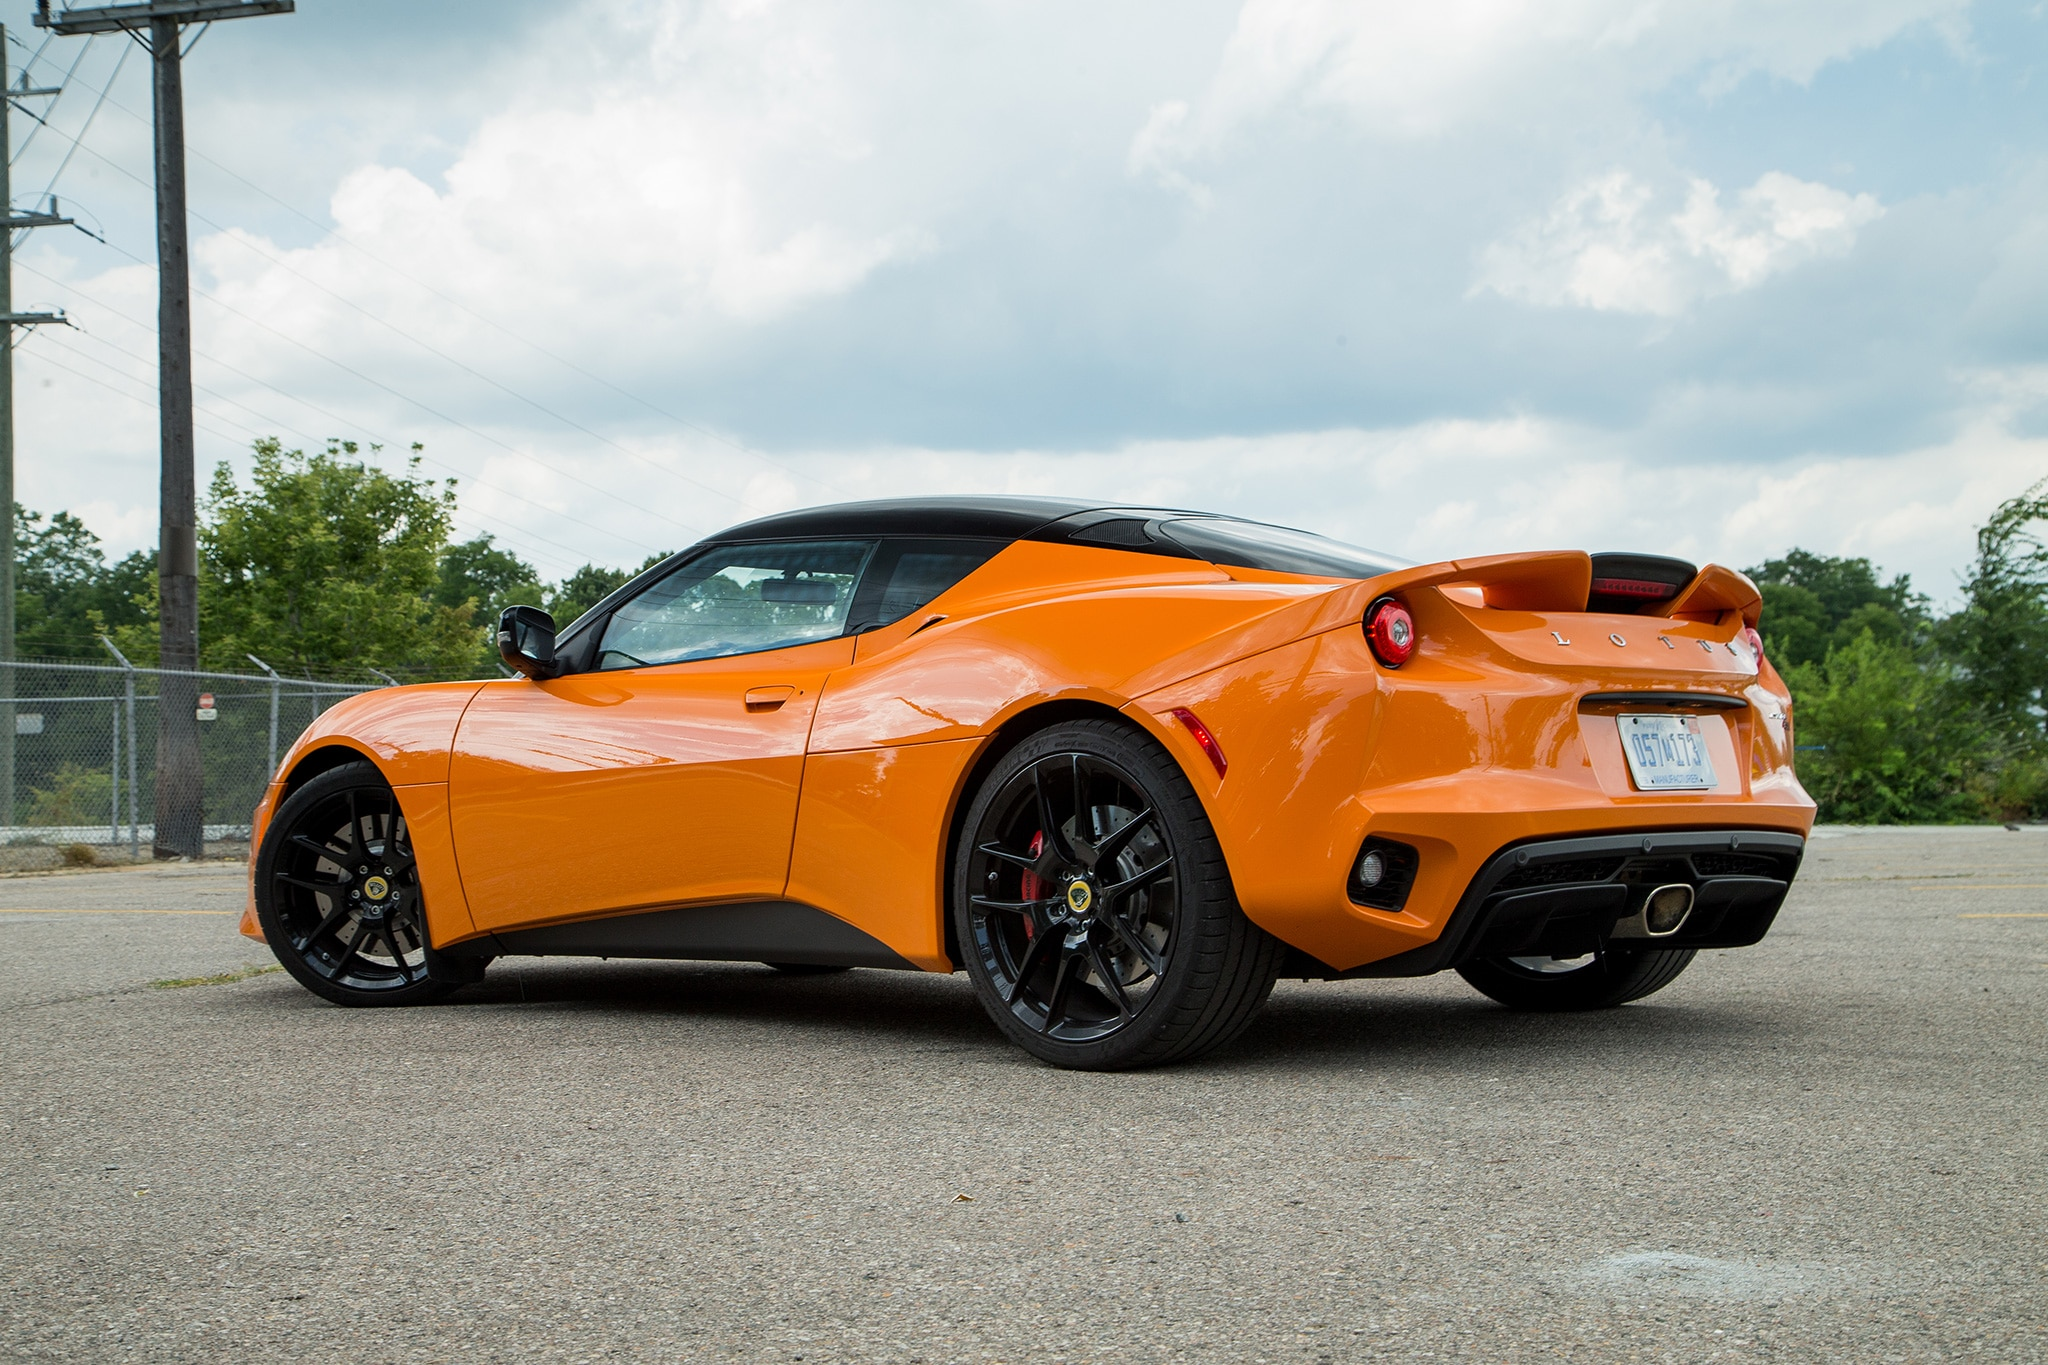 2017 Lotus Evora 400 Rear Three Quarter 05